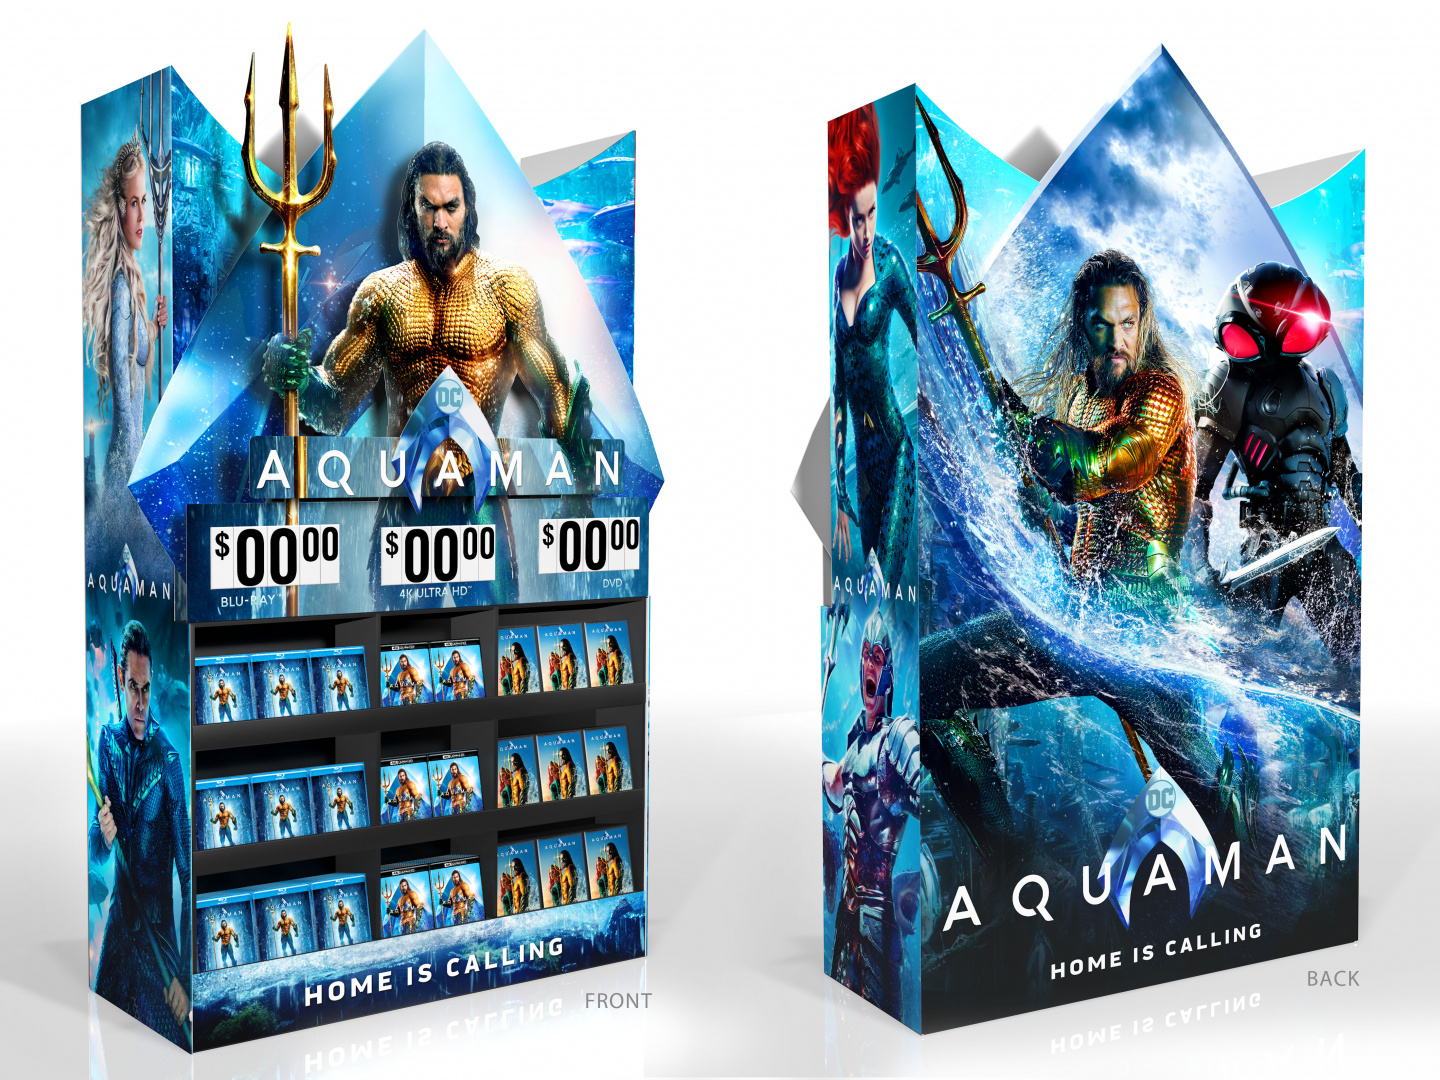 Image for Aquaman Home Entertainment Walmart Display Mini Wow Cube